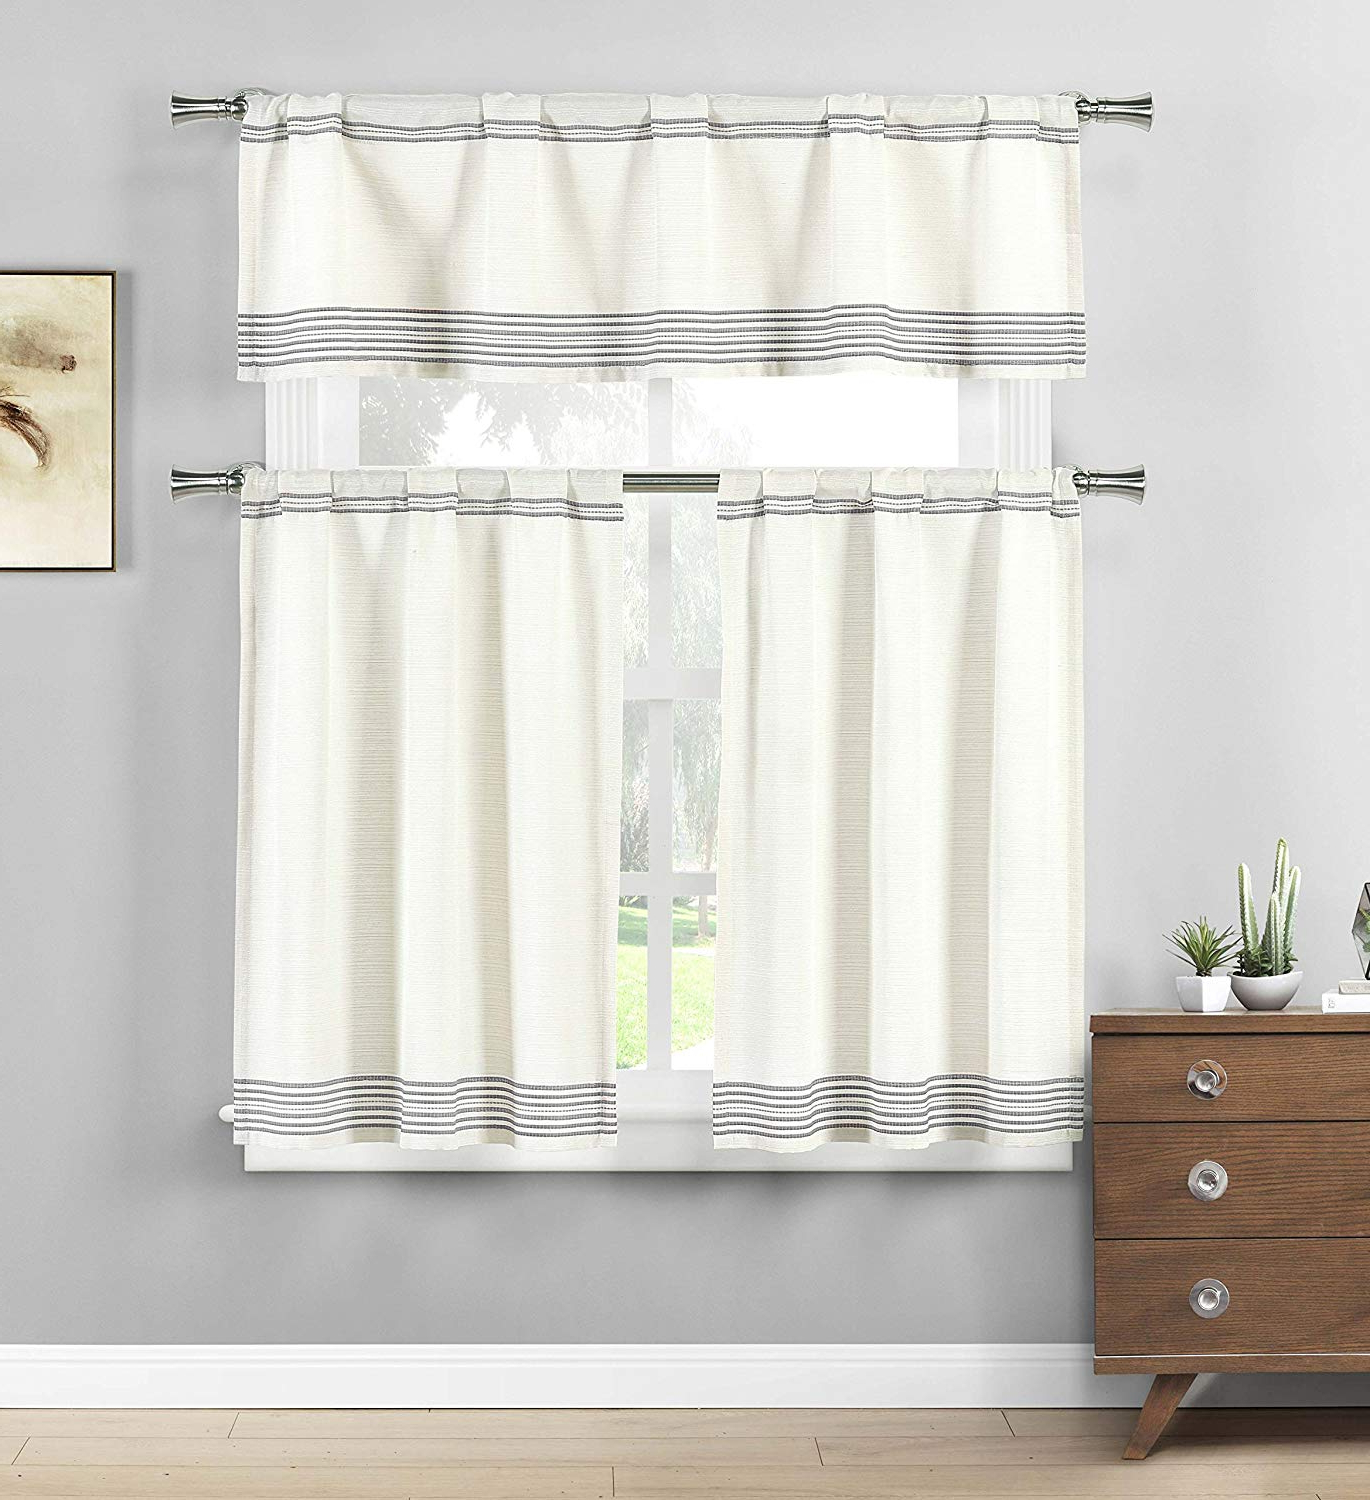 Small Window Curtain For Cafe, Bath, Laundry, Bedroom – (Grey) (View 16 of 20)